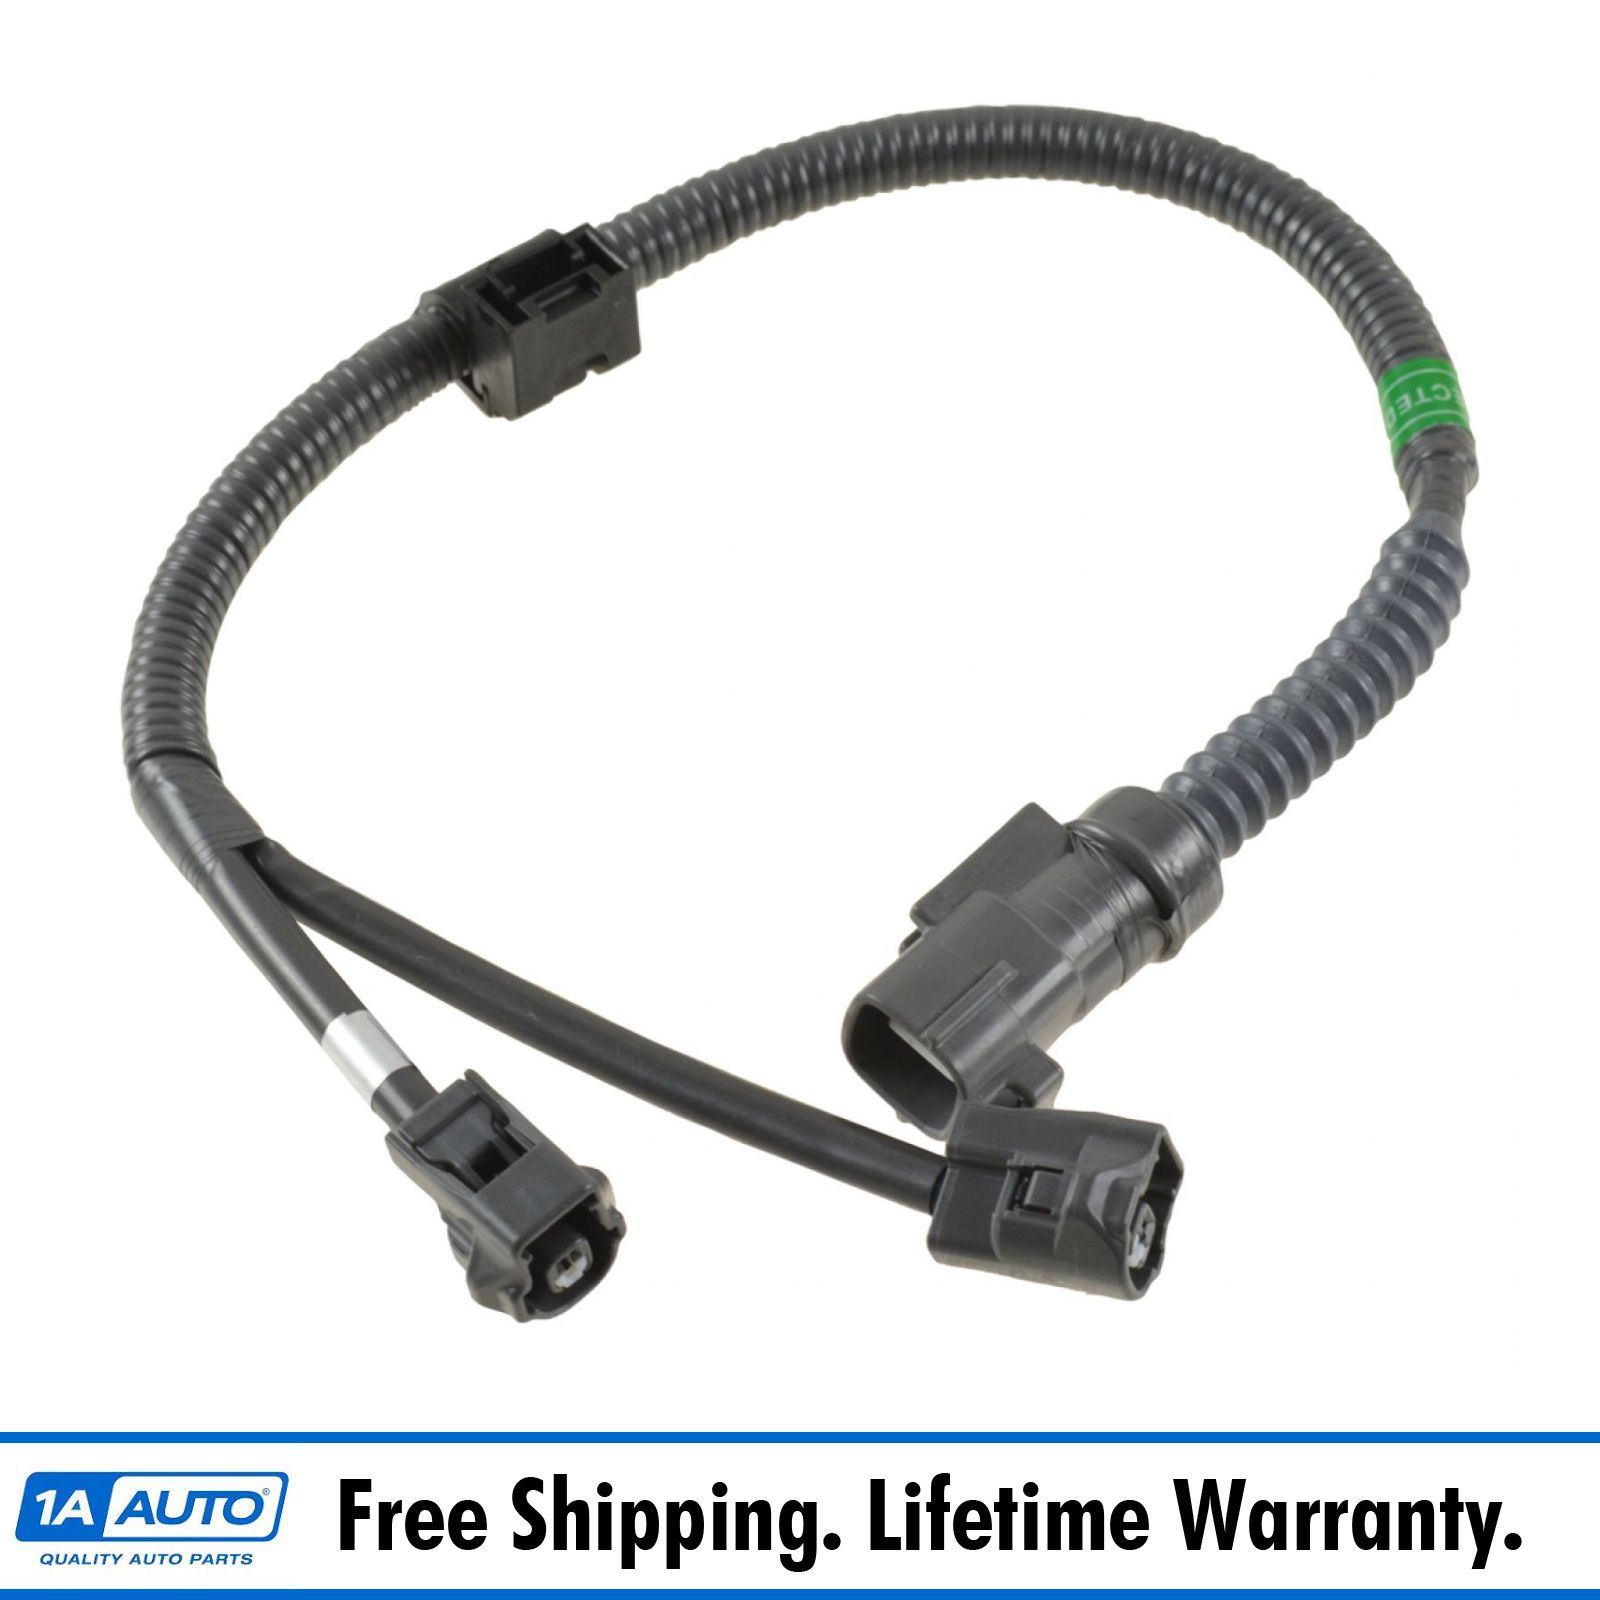 medium resolution of oem engine knock sensor wiring harness pigtail plug for 3 0 toyota toyota exhaust parts image